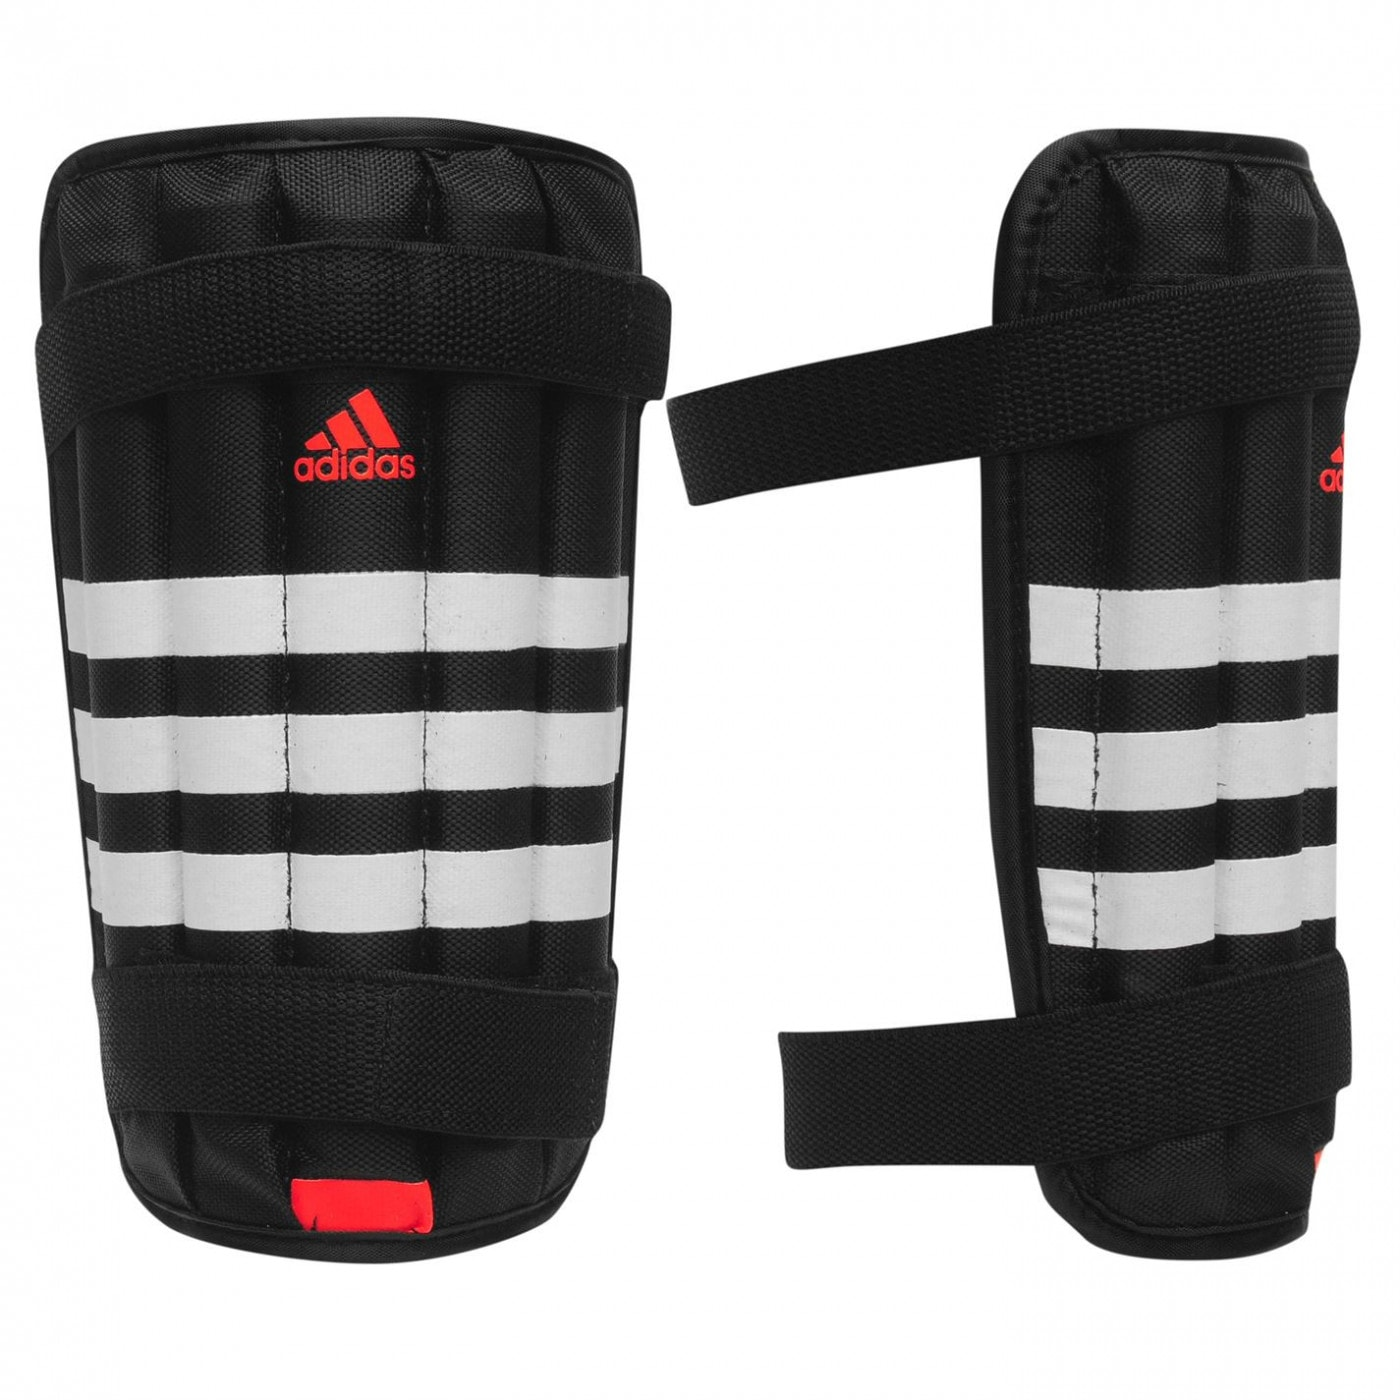 Adidas Evertomic Shin Pads